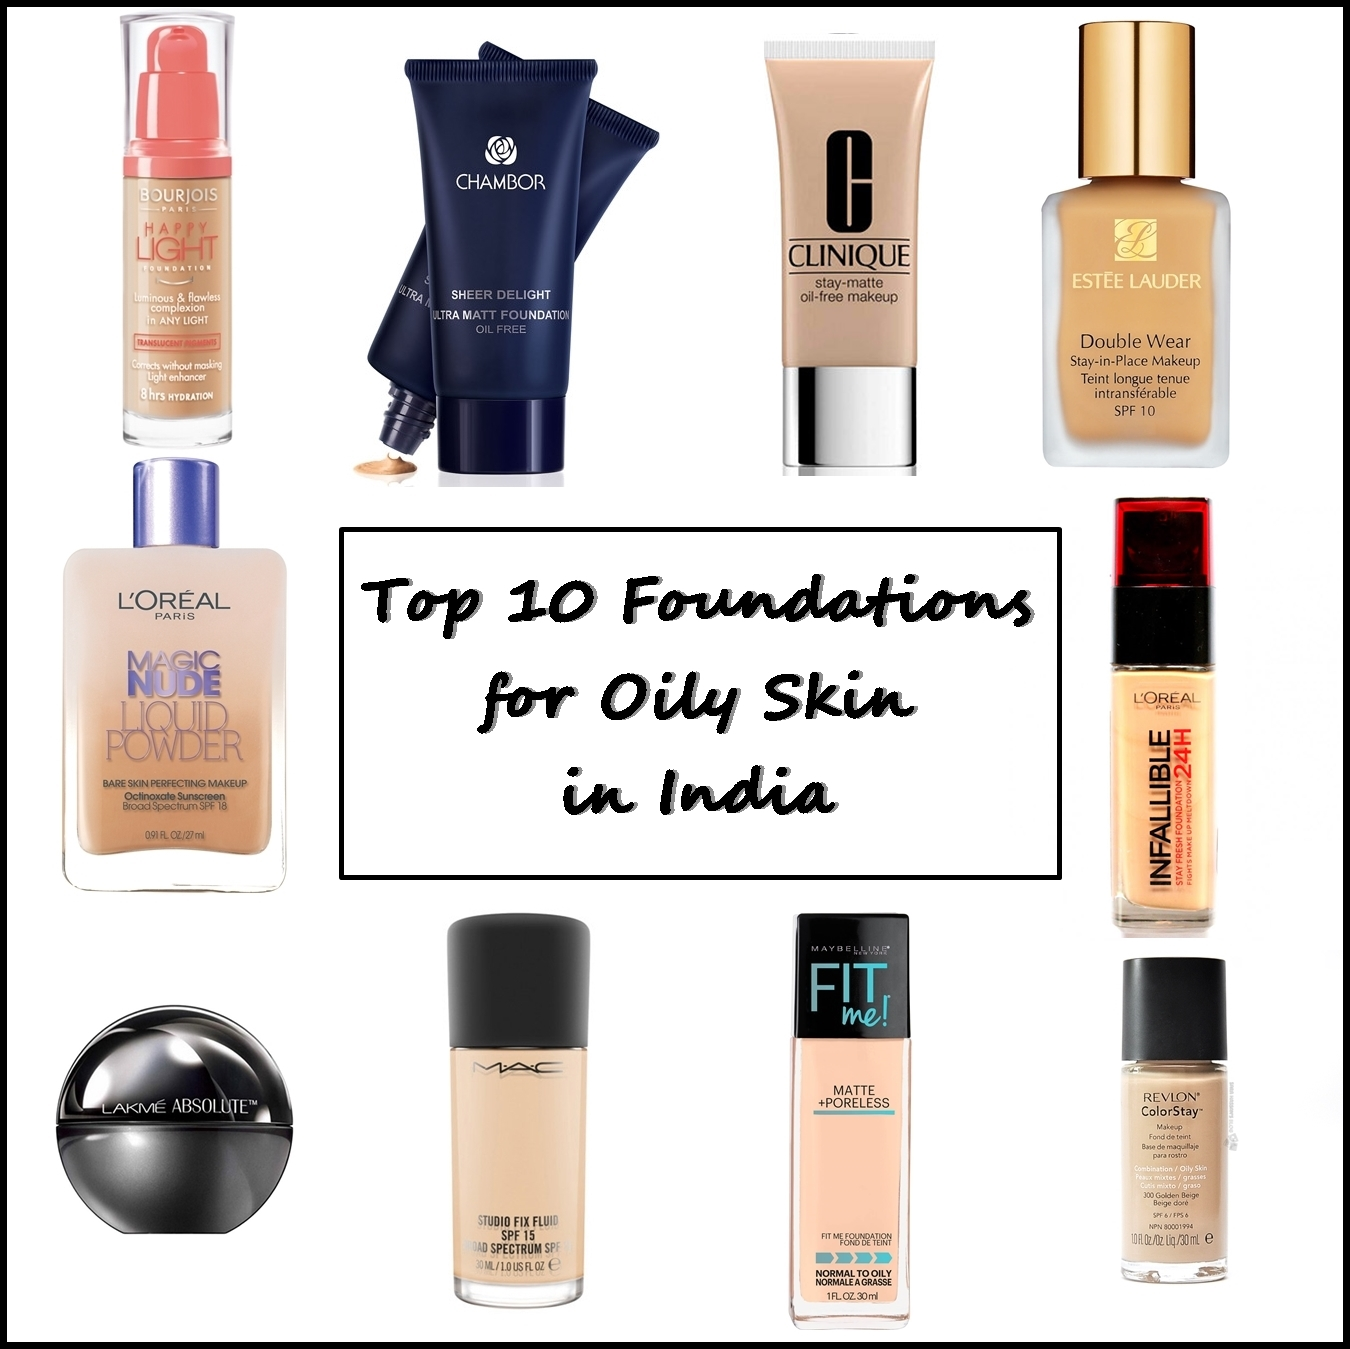 Top 10 Foundations For Oily Skin In India Prices Buy Online New Love Makeup